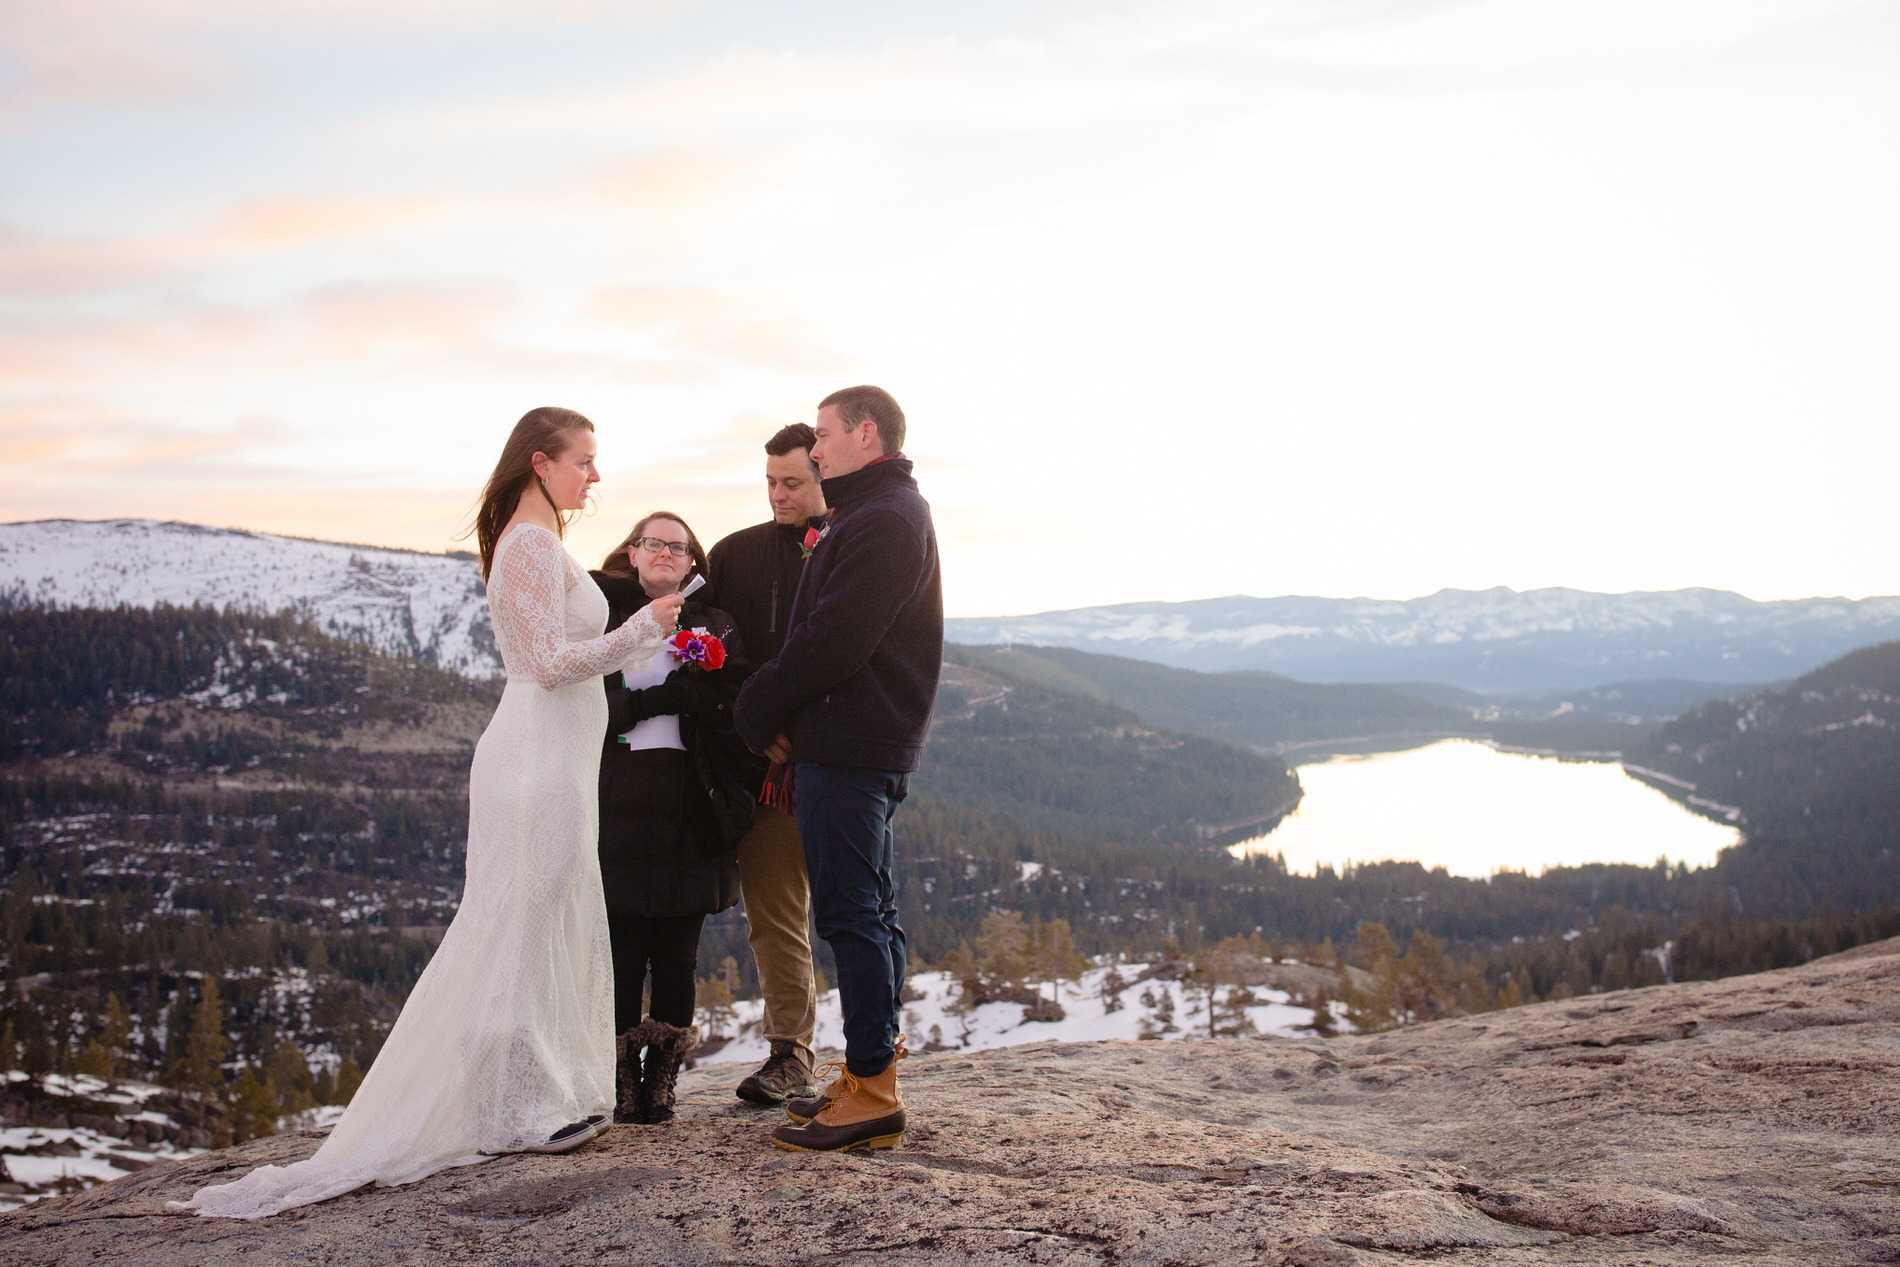 Sunrise at Donner, CA Elopement Picture from the Ceremony -